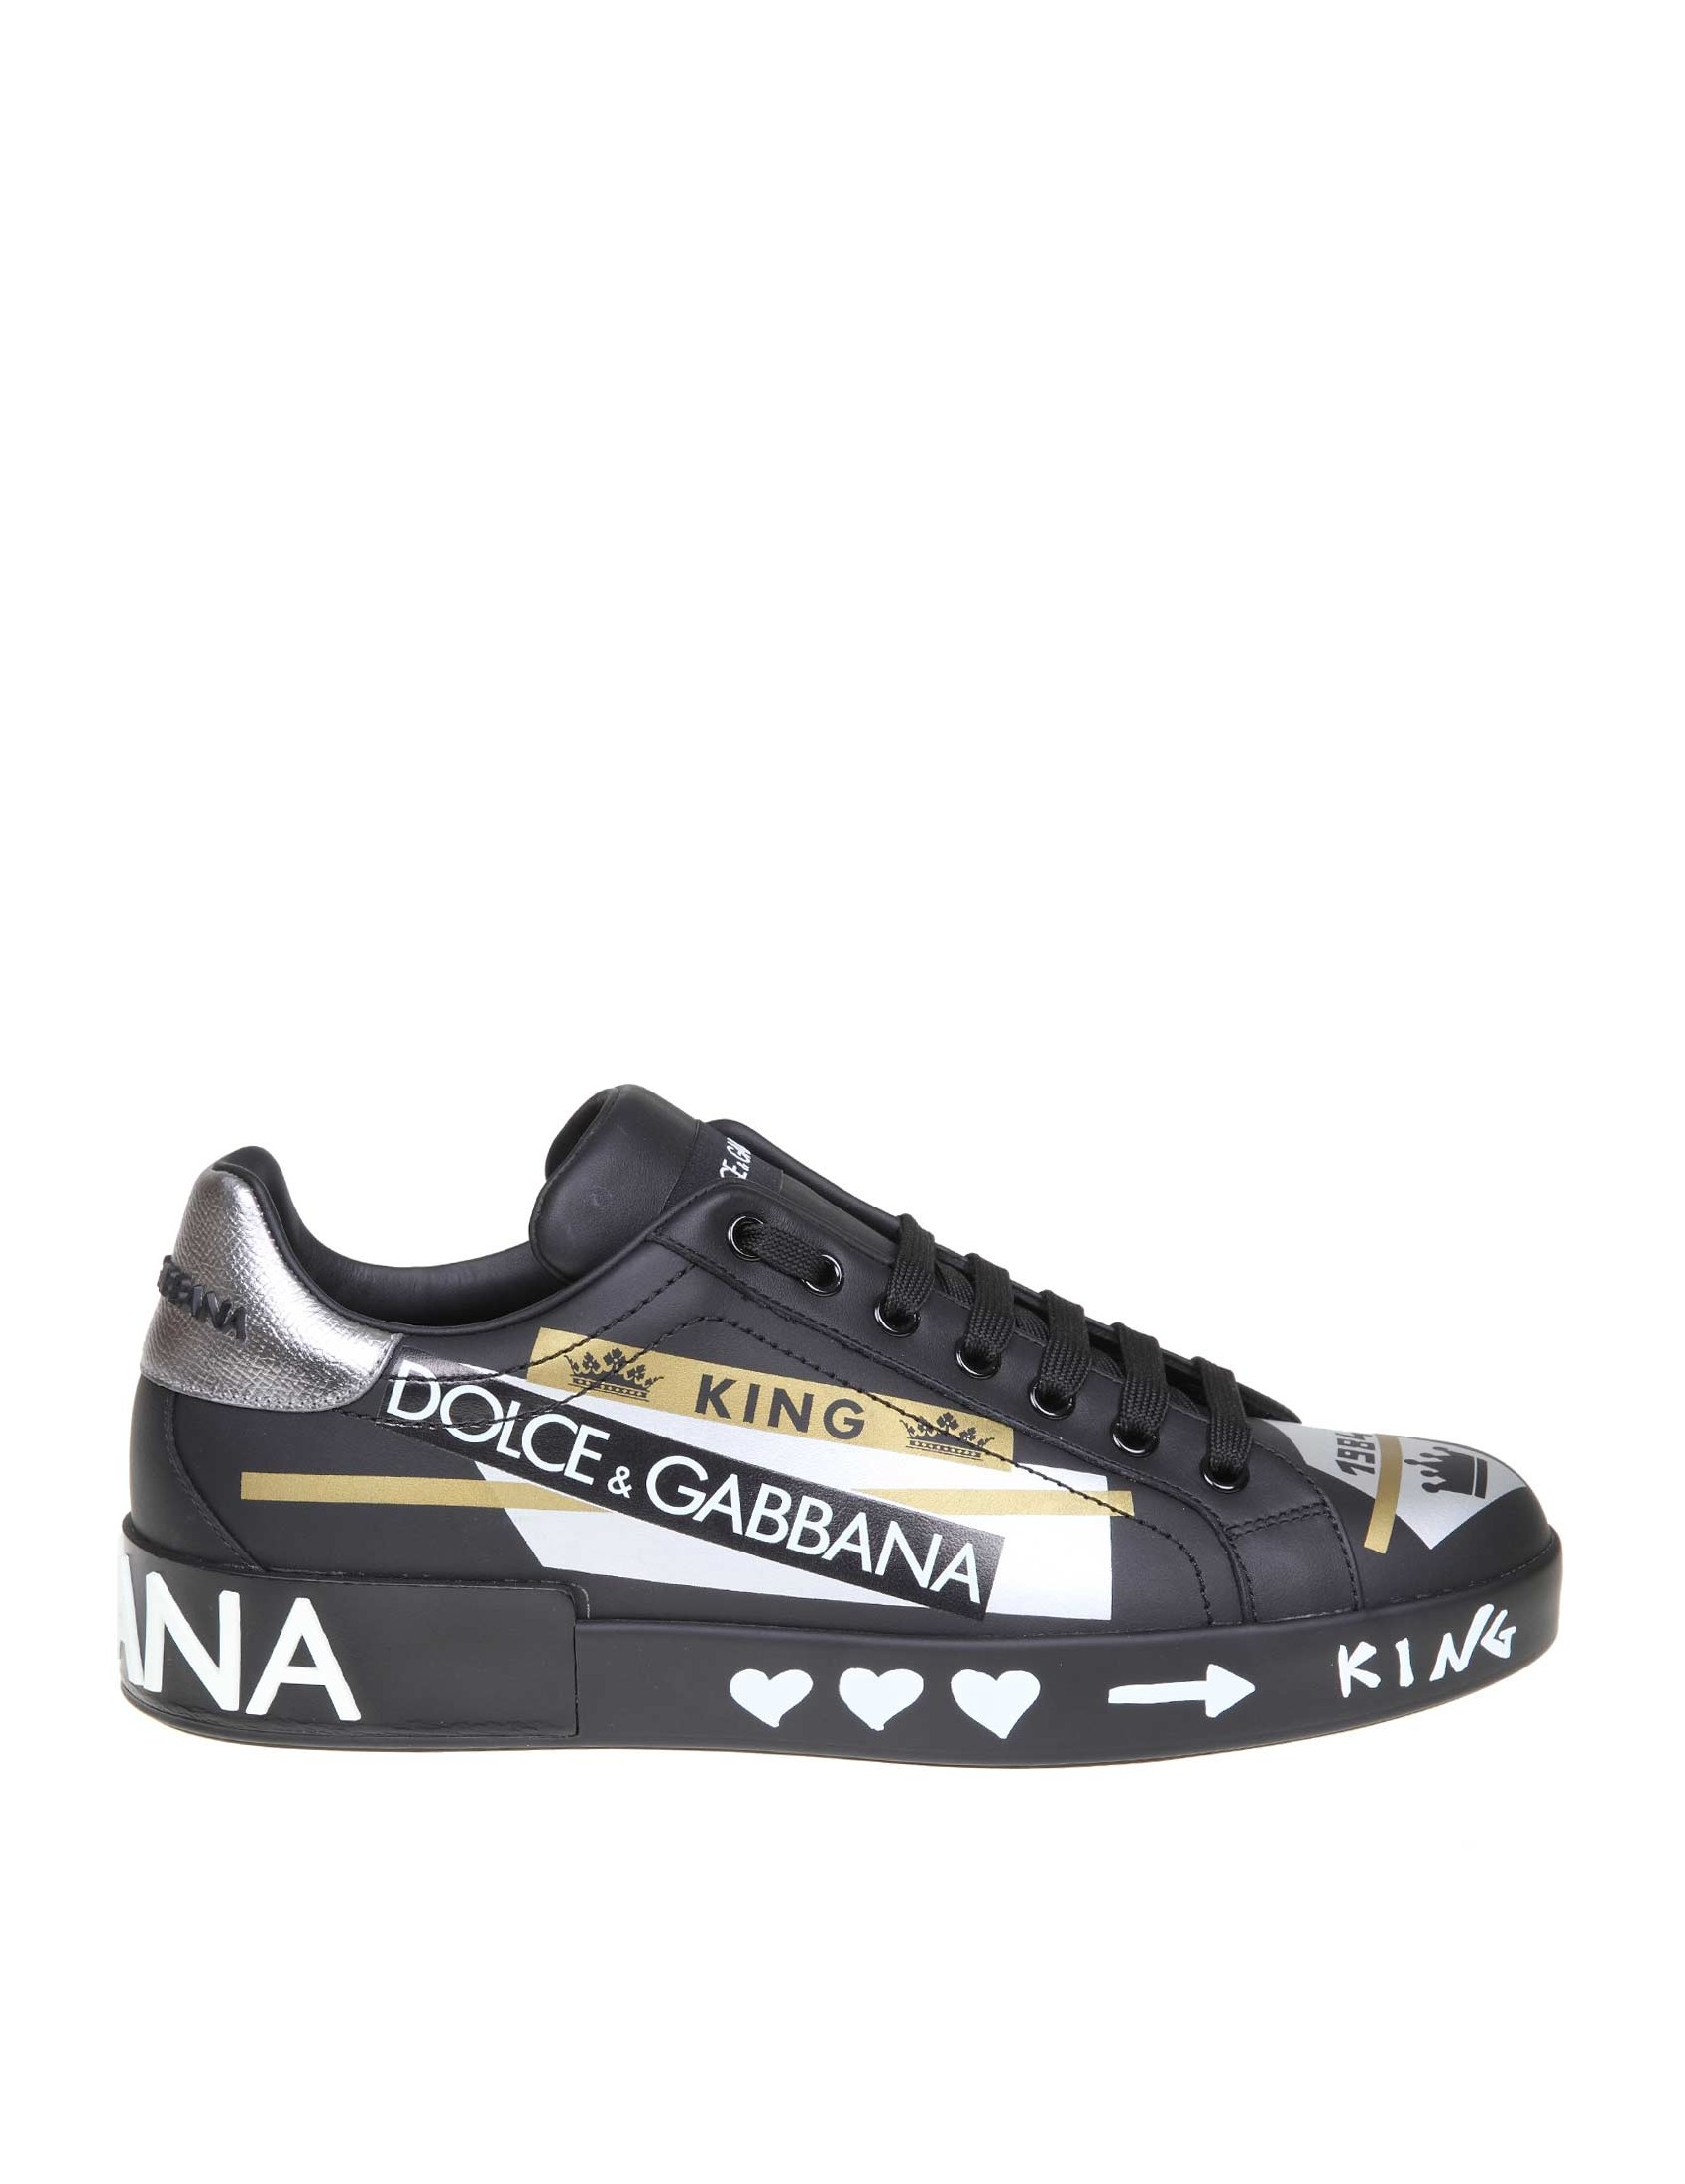 5612df05007 Sneakers from the Portofino line in calfskin. Black color with printed  lettering. Calfskin upper with contrasting silver heel. Model with round tip